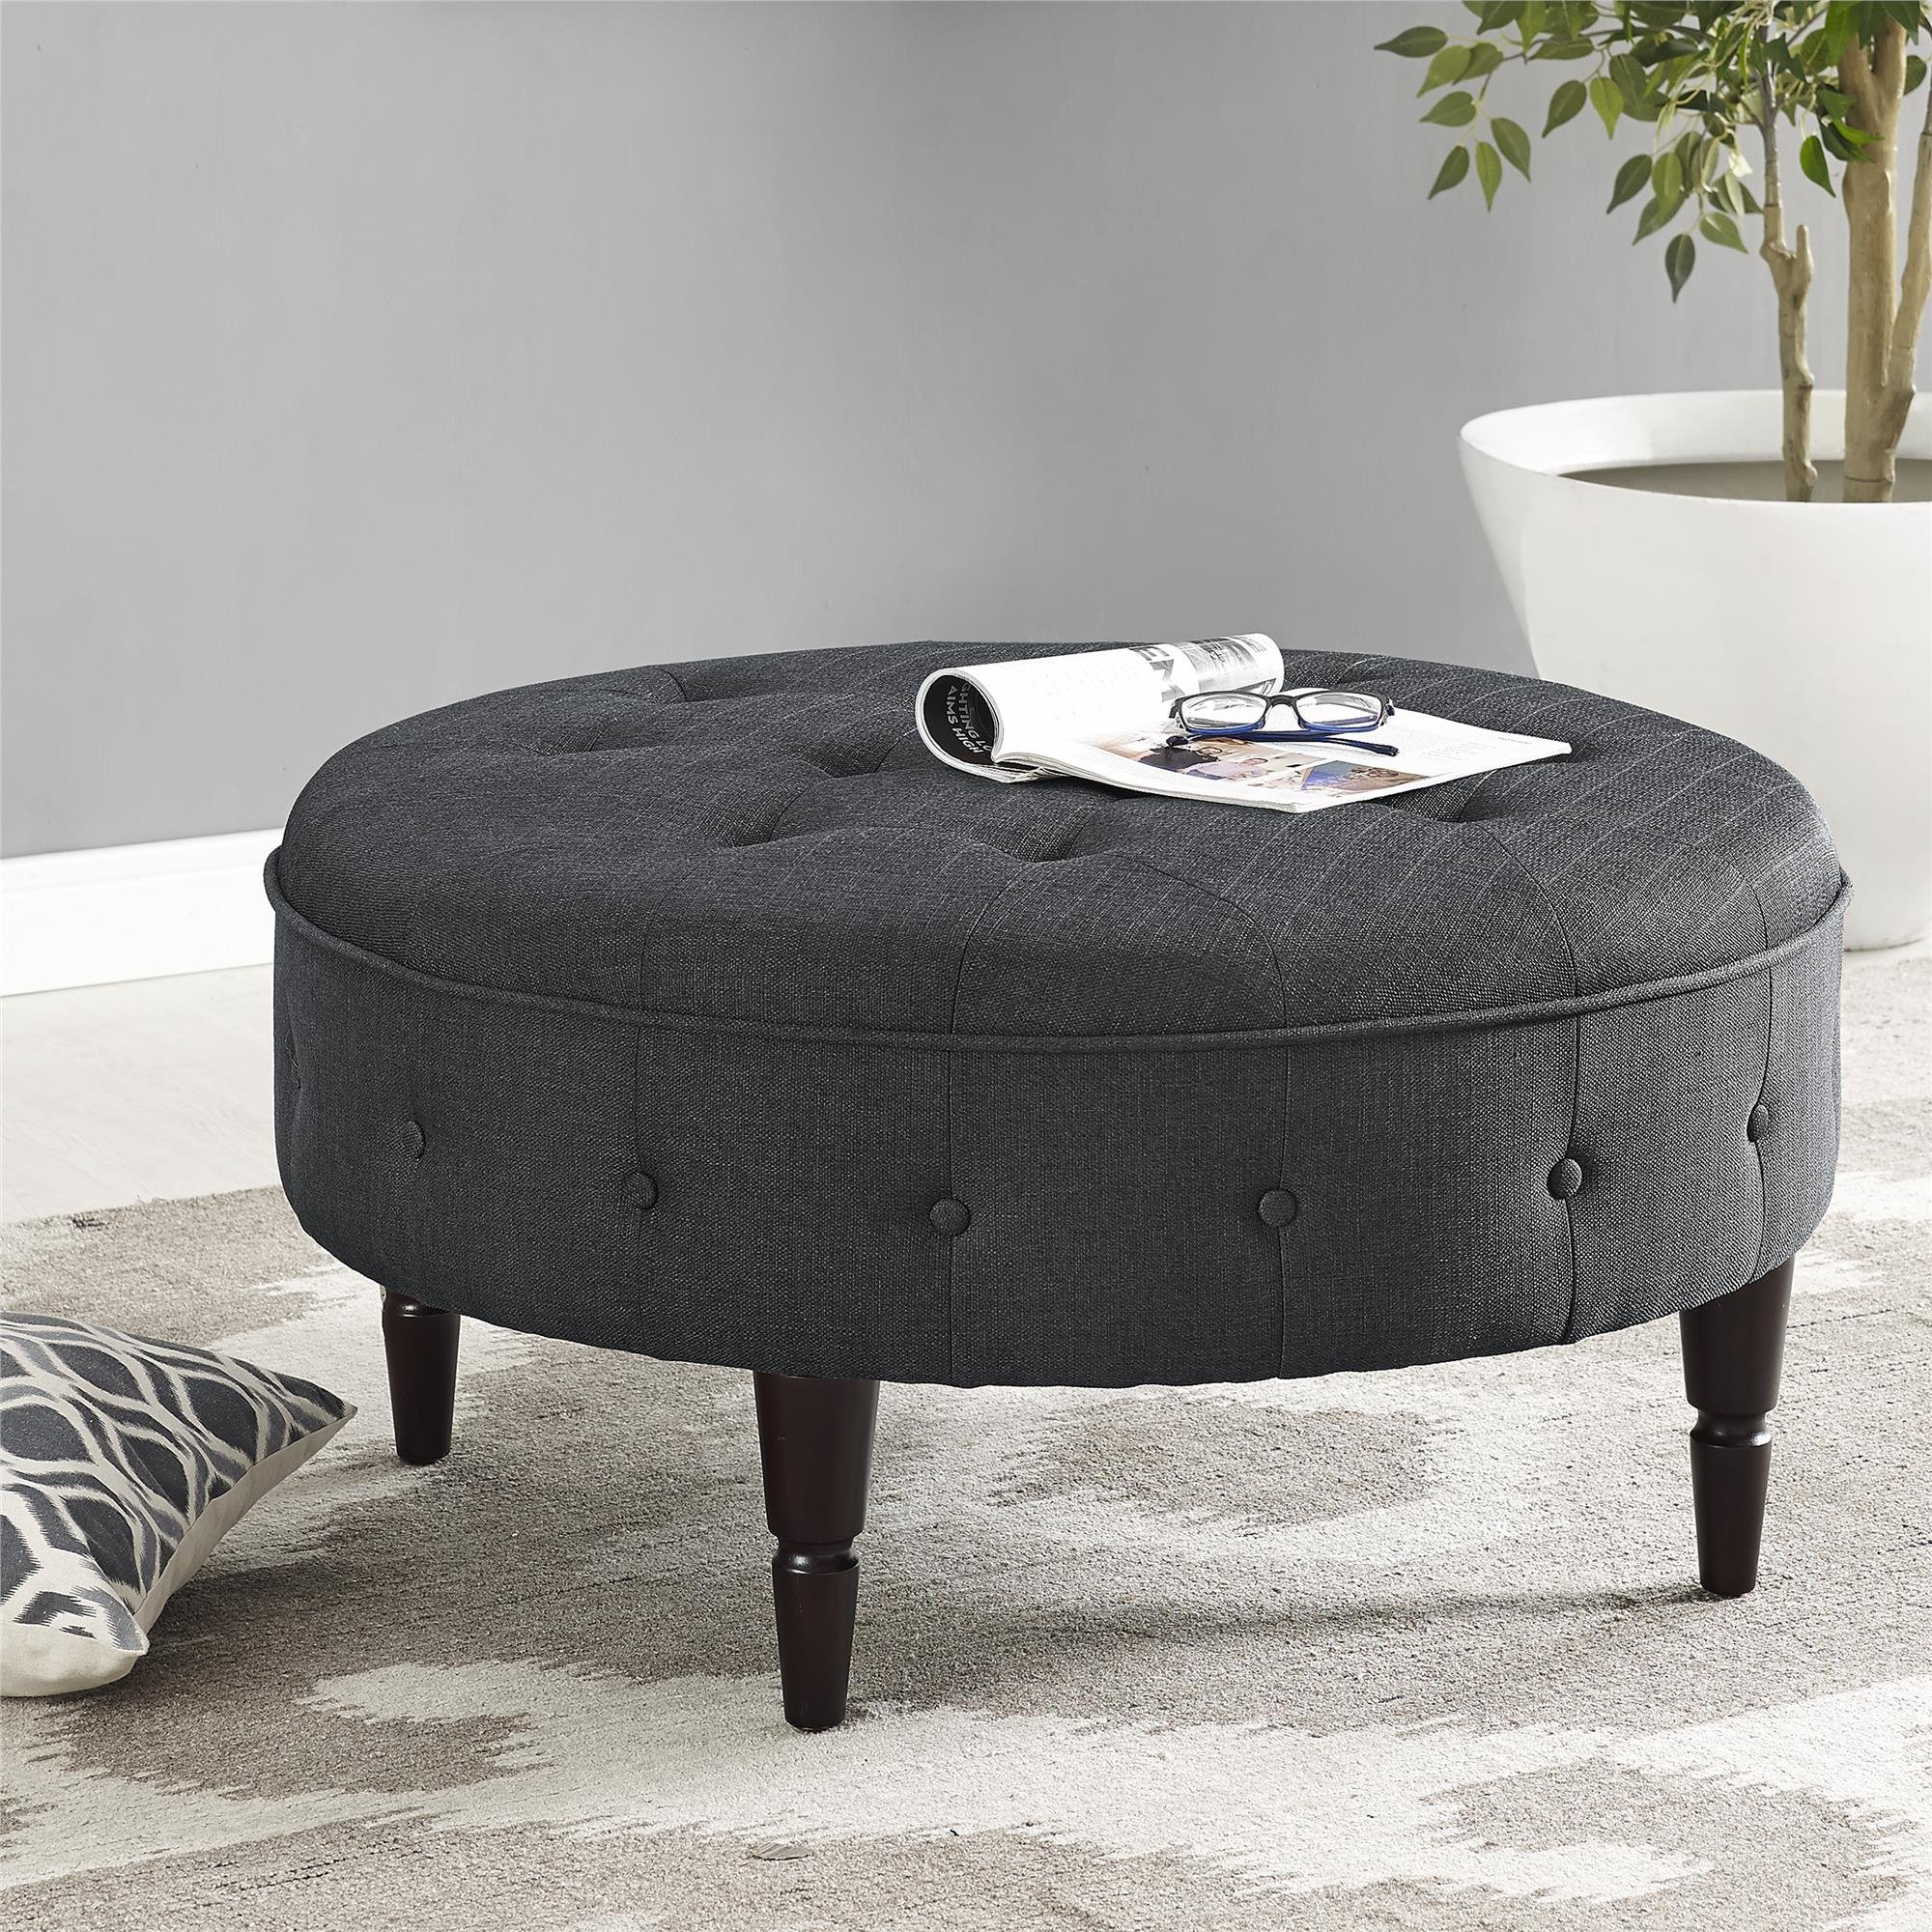 Dorel Living DL6993-CH Patty Round Ottoman, Charcoal by Dorel Living (Image #2)